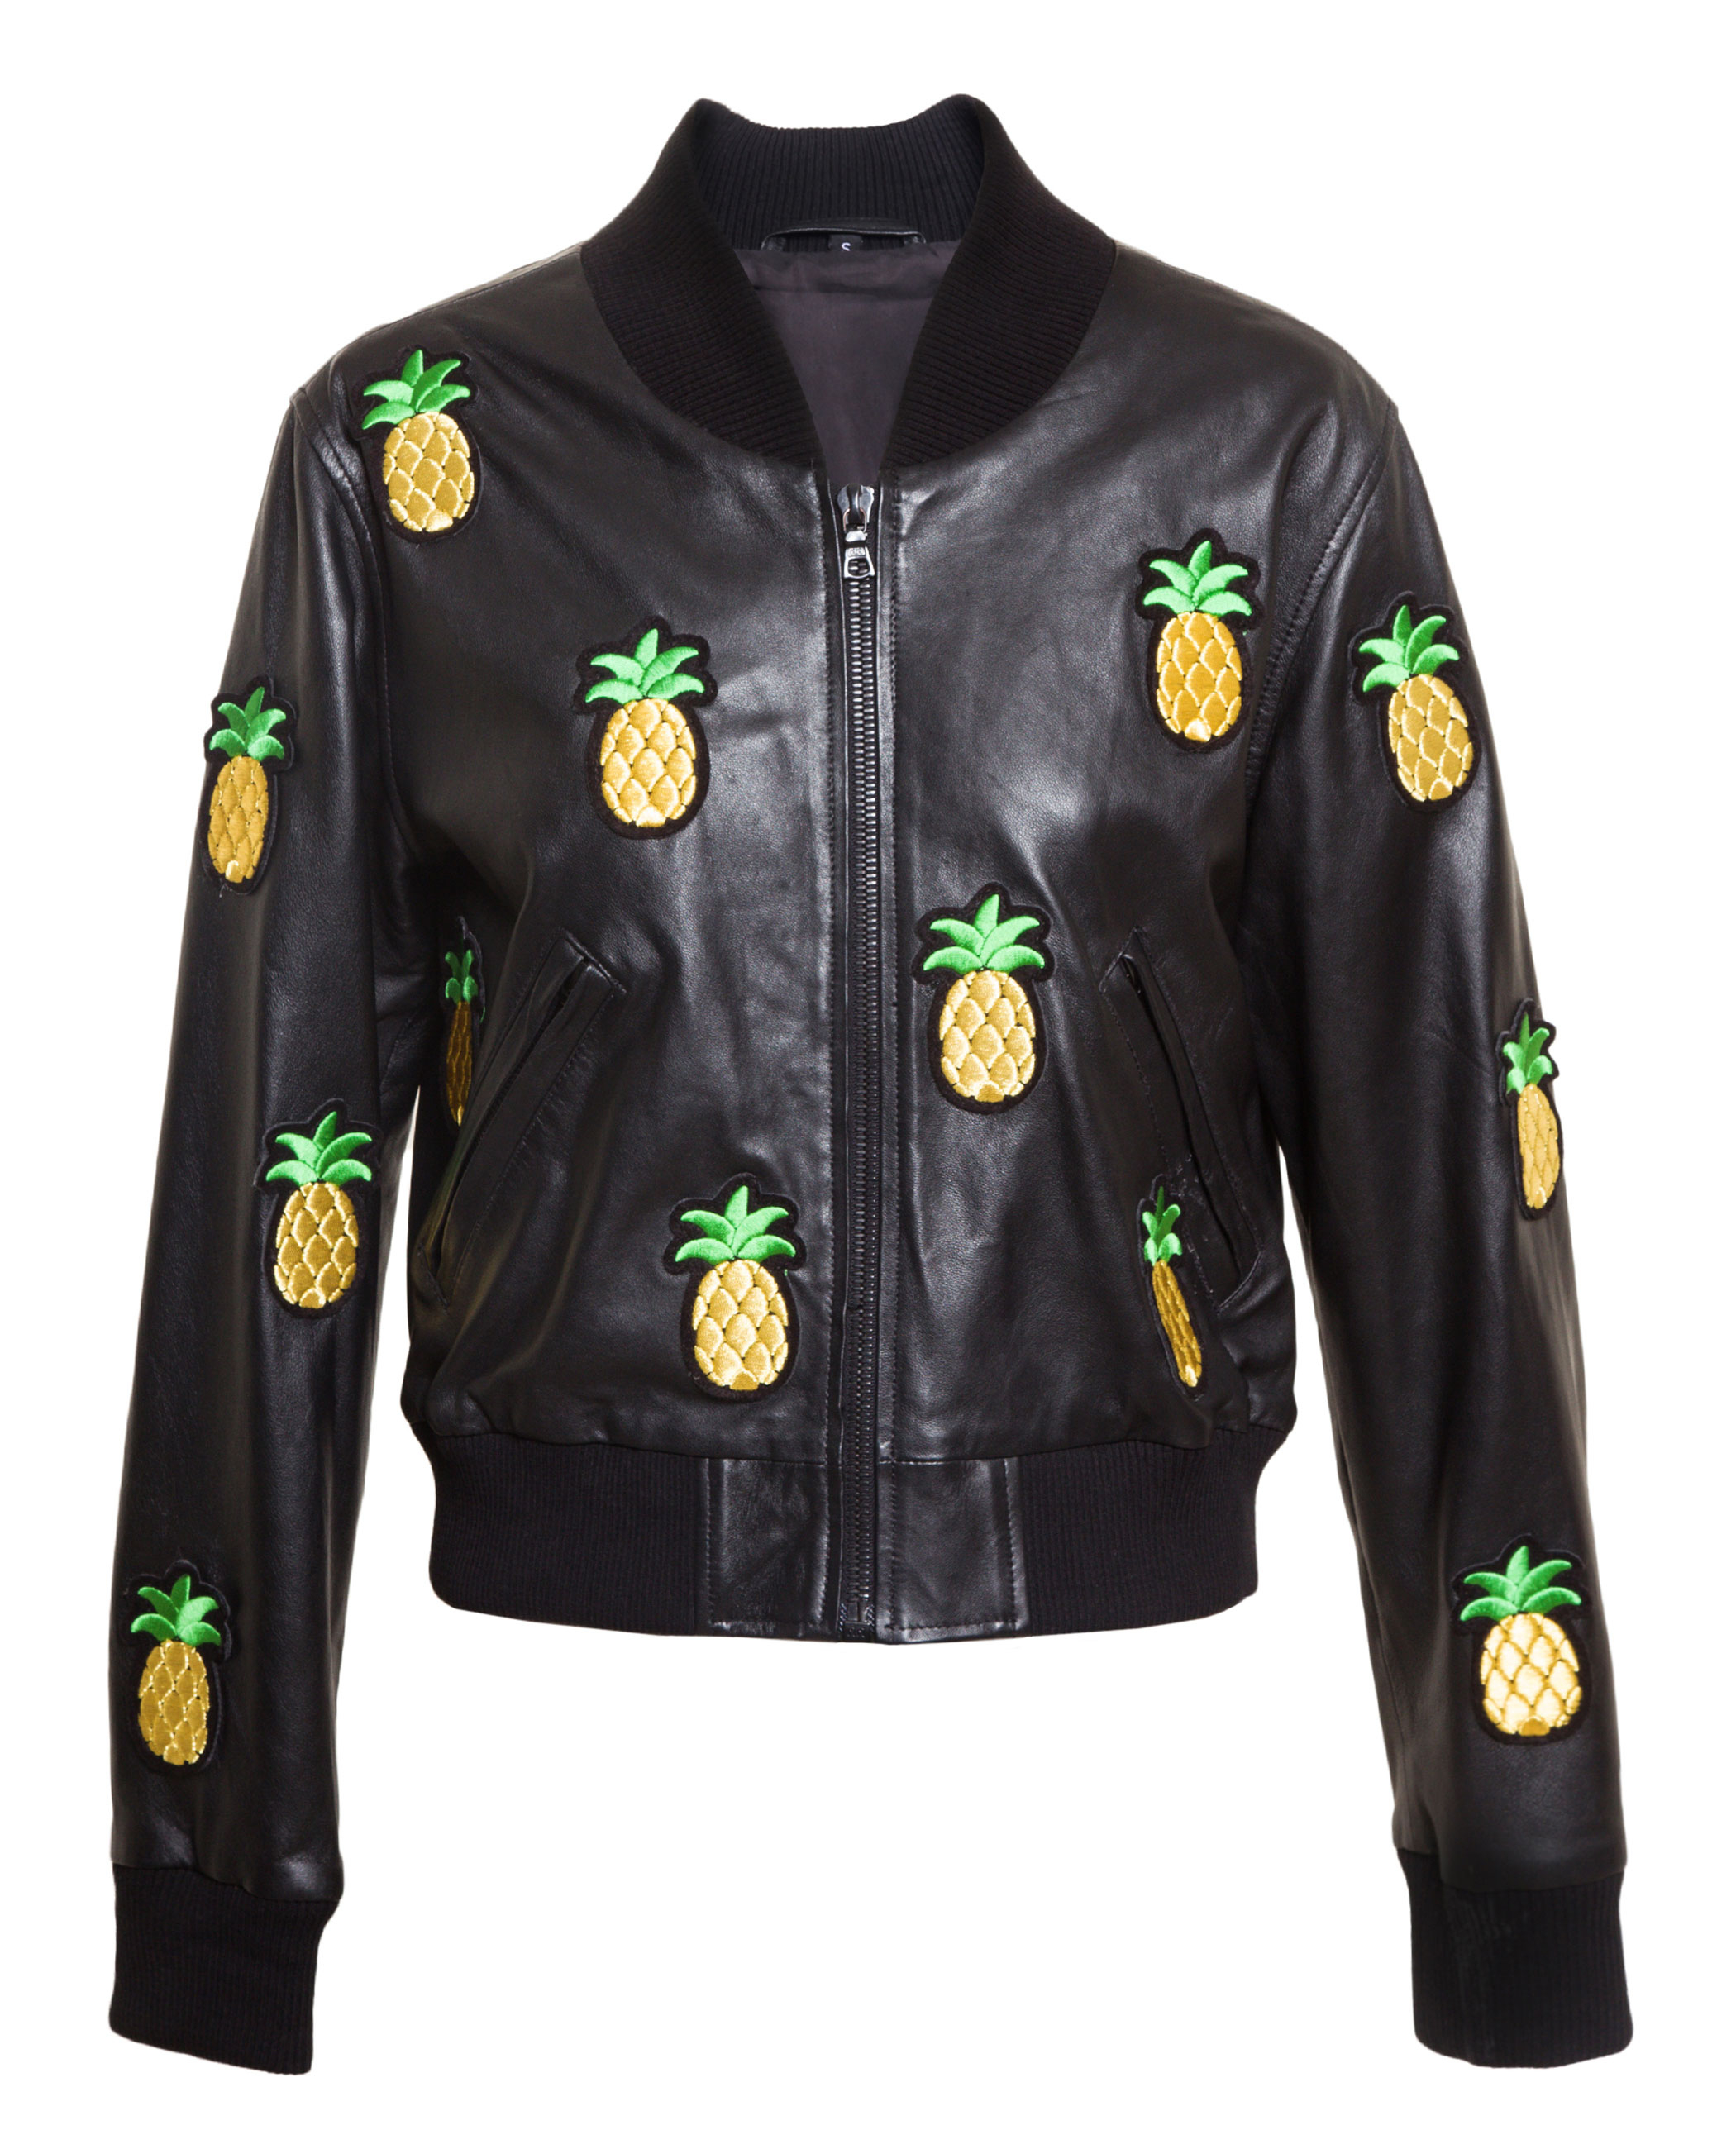 Leather jacket patches - Love Leather Er Jacket With Pineapple Patches In Black